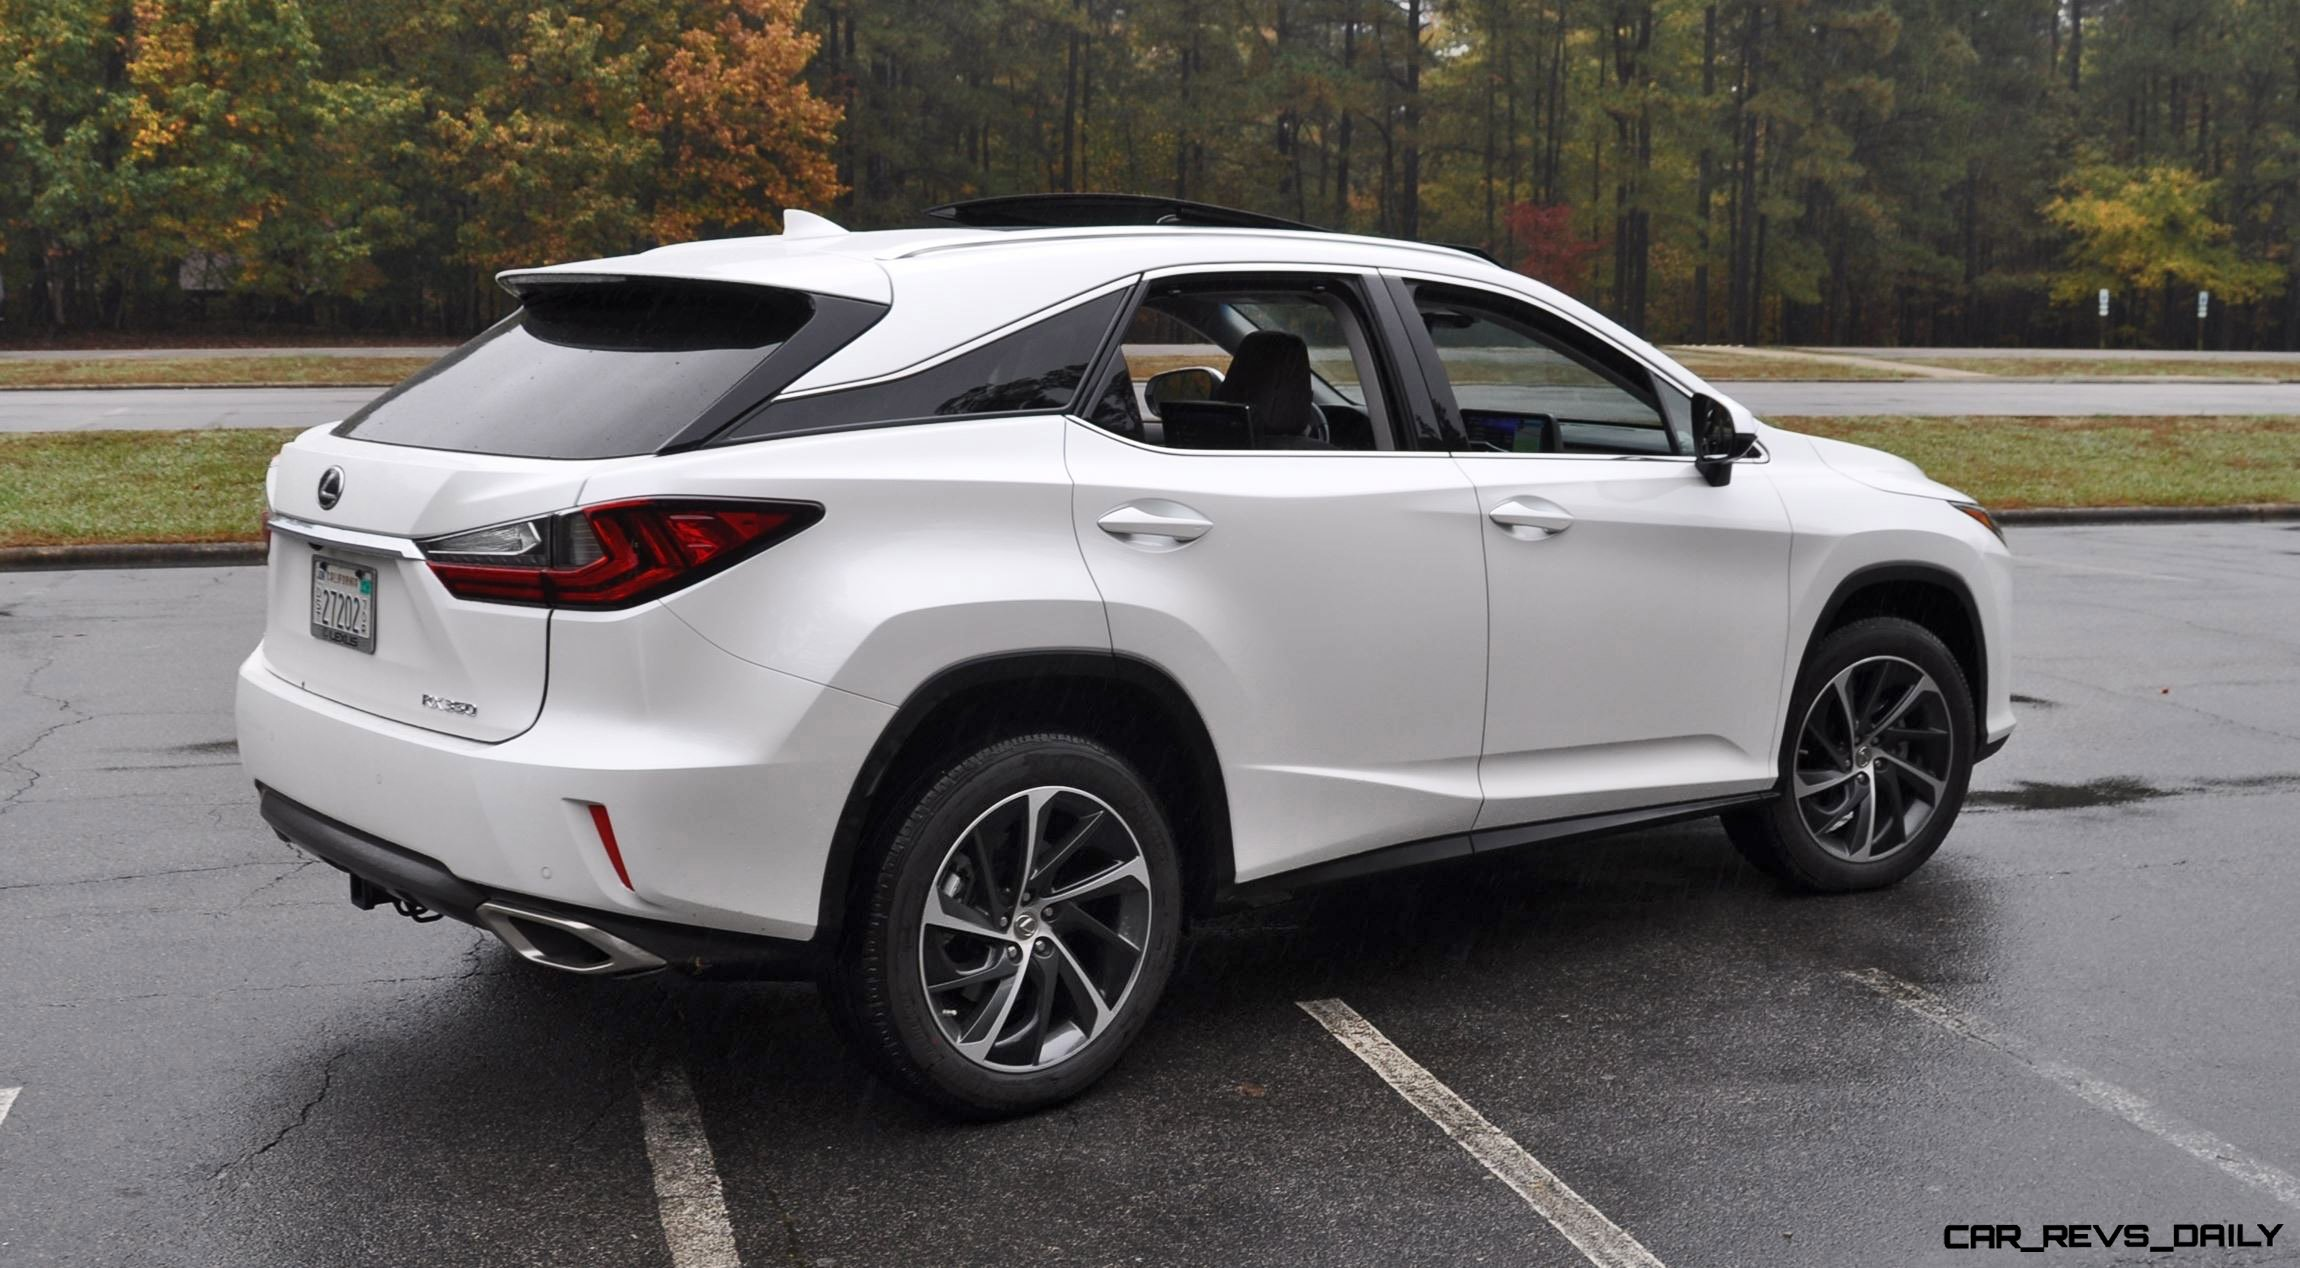 2016 Lexus Rx350 Colors Gallery Inside And Out 80 New Pics Of Eminent White Pearl Paint